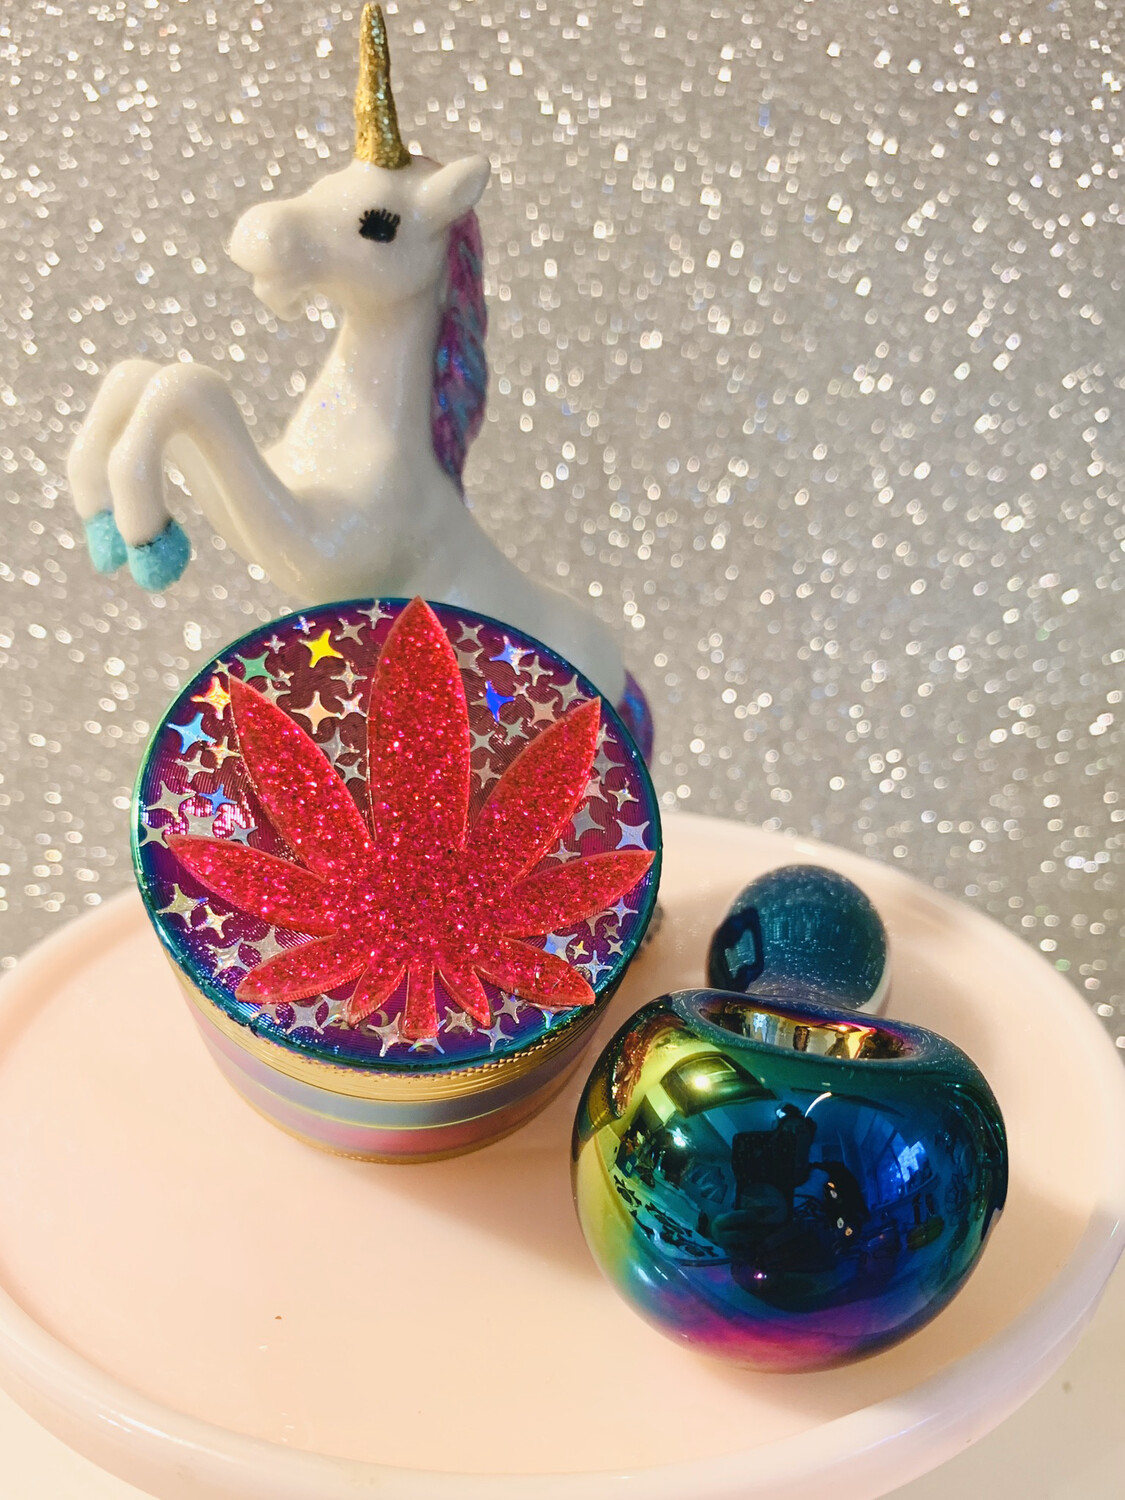 Electroplated Rainbow Grinder With Holographic Stars And Leaf Charm